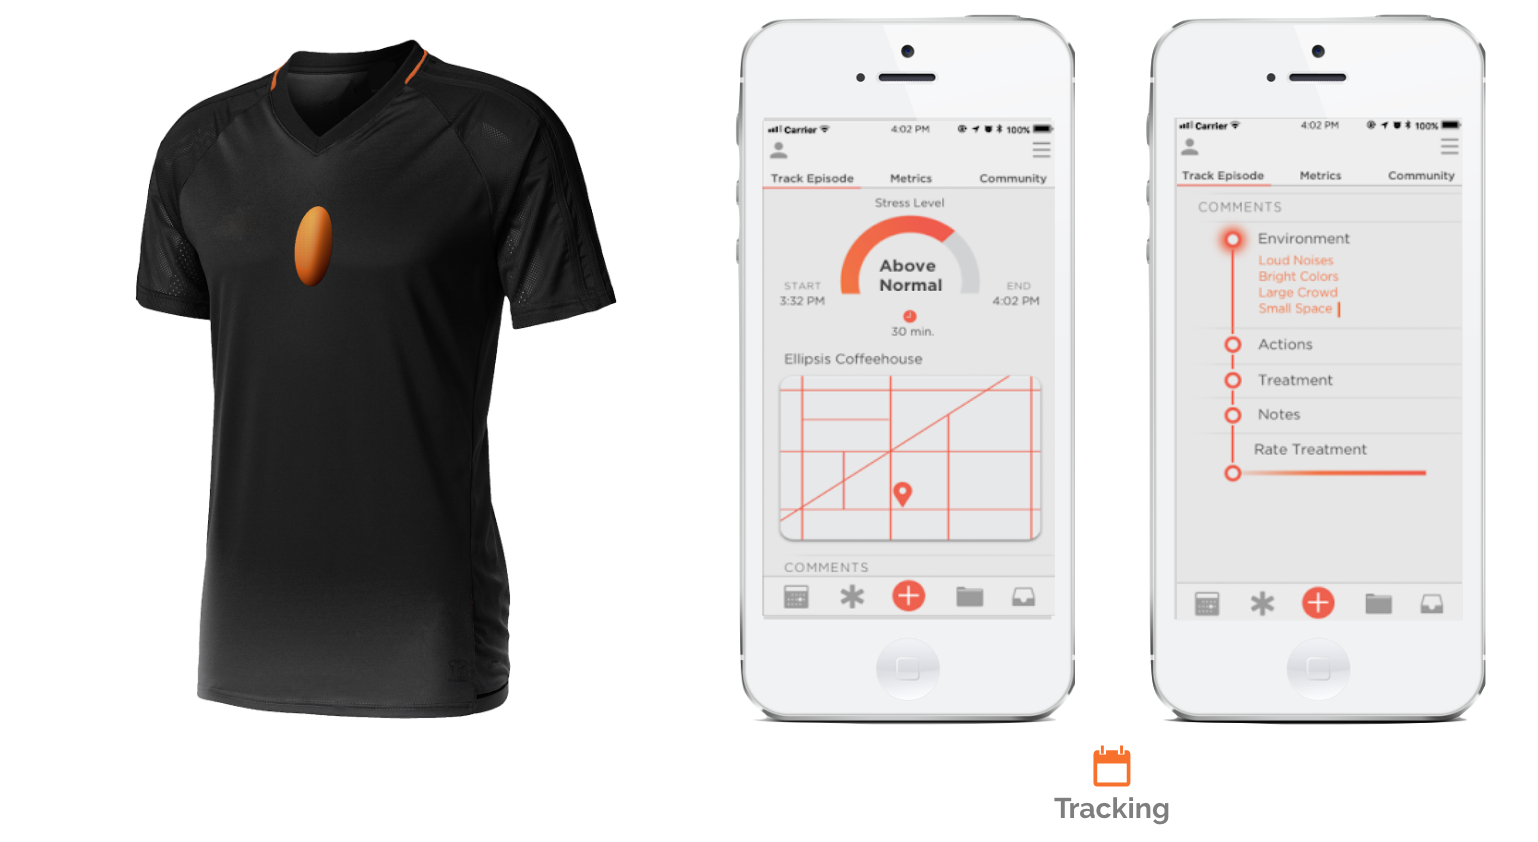 The future of meltdown prevention? Wearable Tech - Our intention is to create wearable smart apparel and an app system that monitors biometrics that are indicative of stress, wireless transmitting data to our associated app for early detection and notification of meltdowns. Now when a meltdown occurs, an alert is sent to the child's parent and any other caregivers as well as Alec of the the impending event.